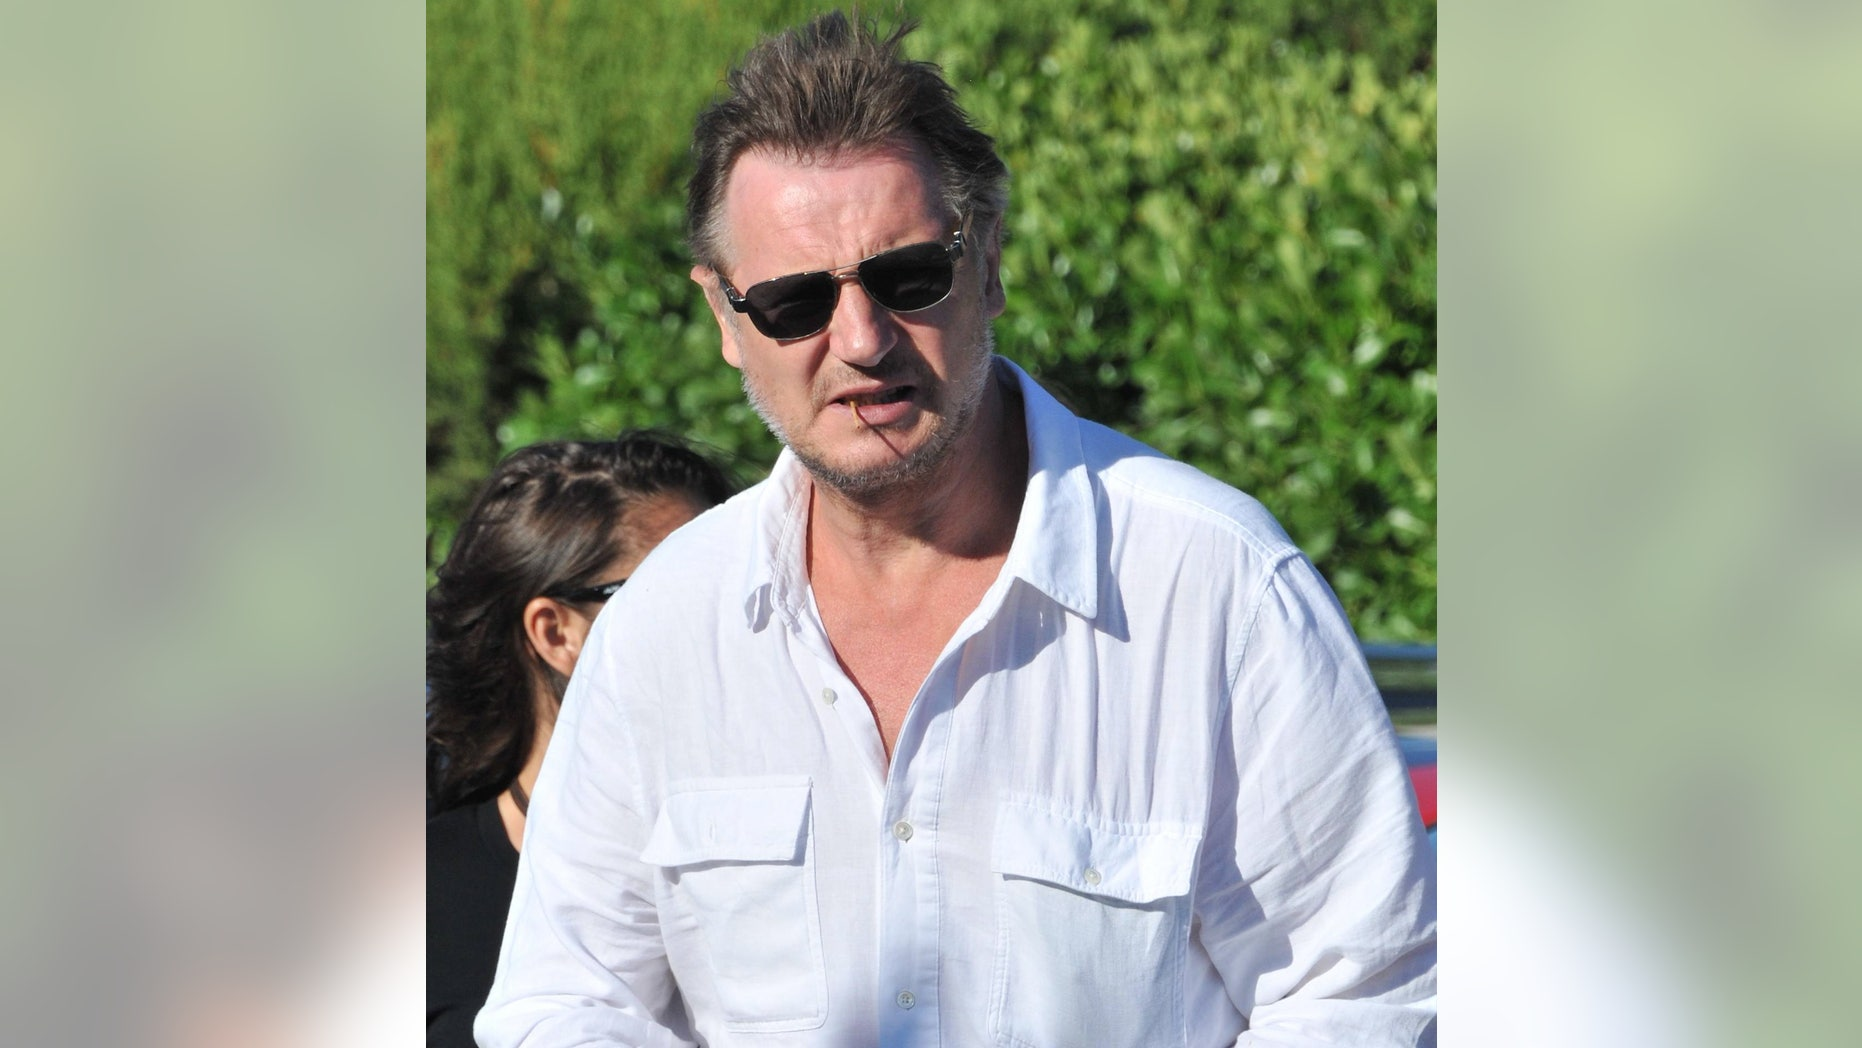 Liam Neeson Finds Love Again With Public Relations Exec